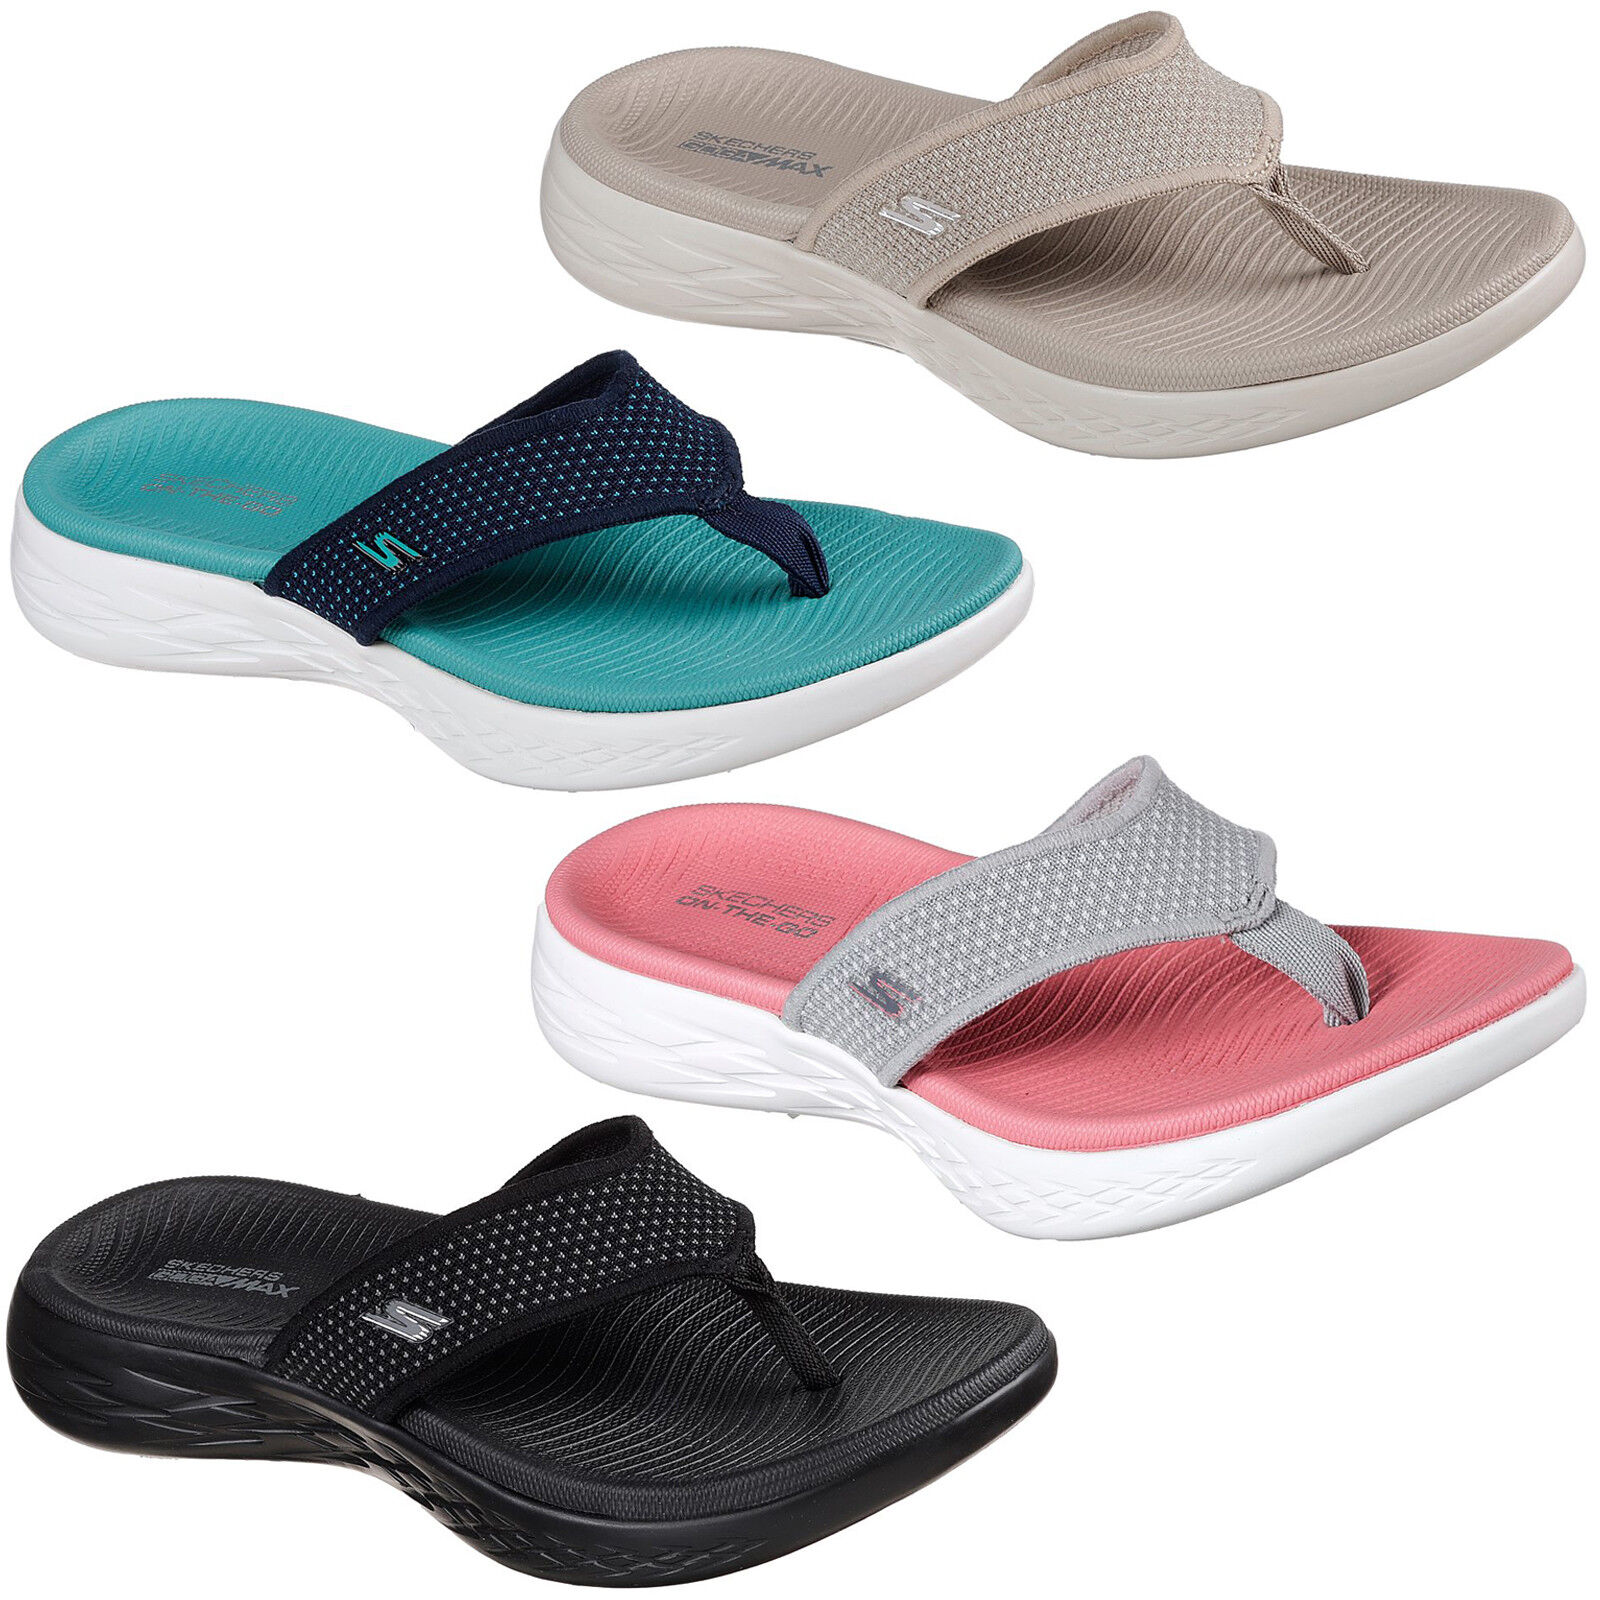 Skechers On The Go 600 Flip Flops Memory Foam Summer Womens Sandals Toe Post